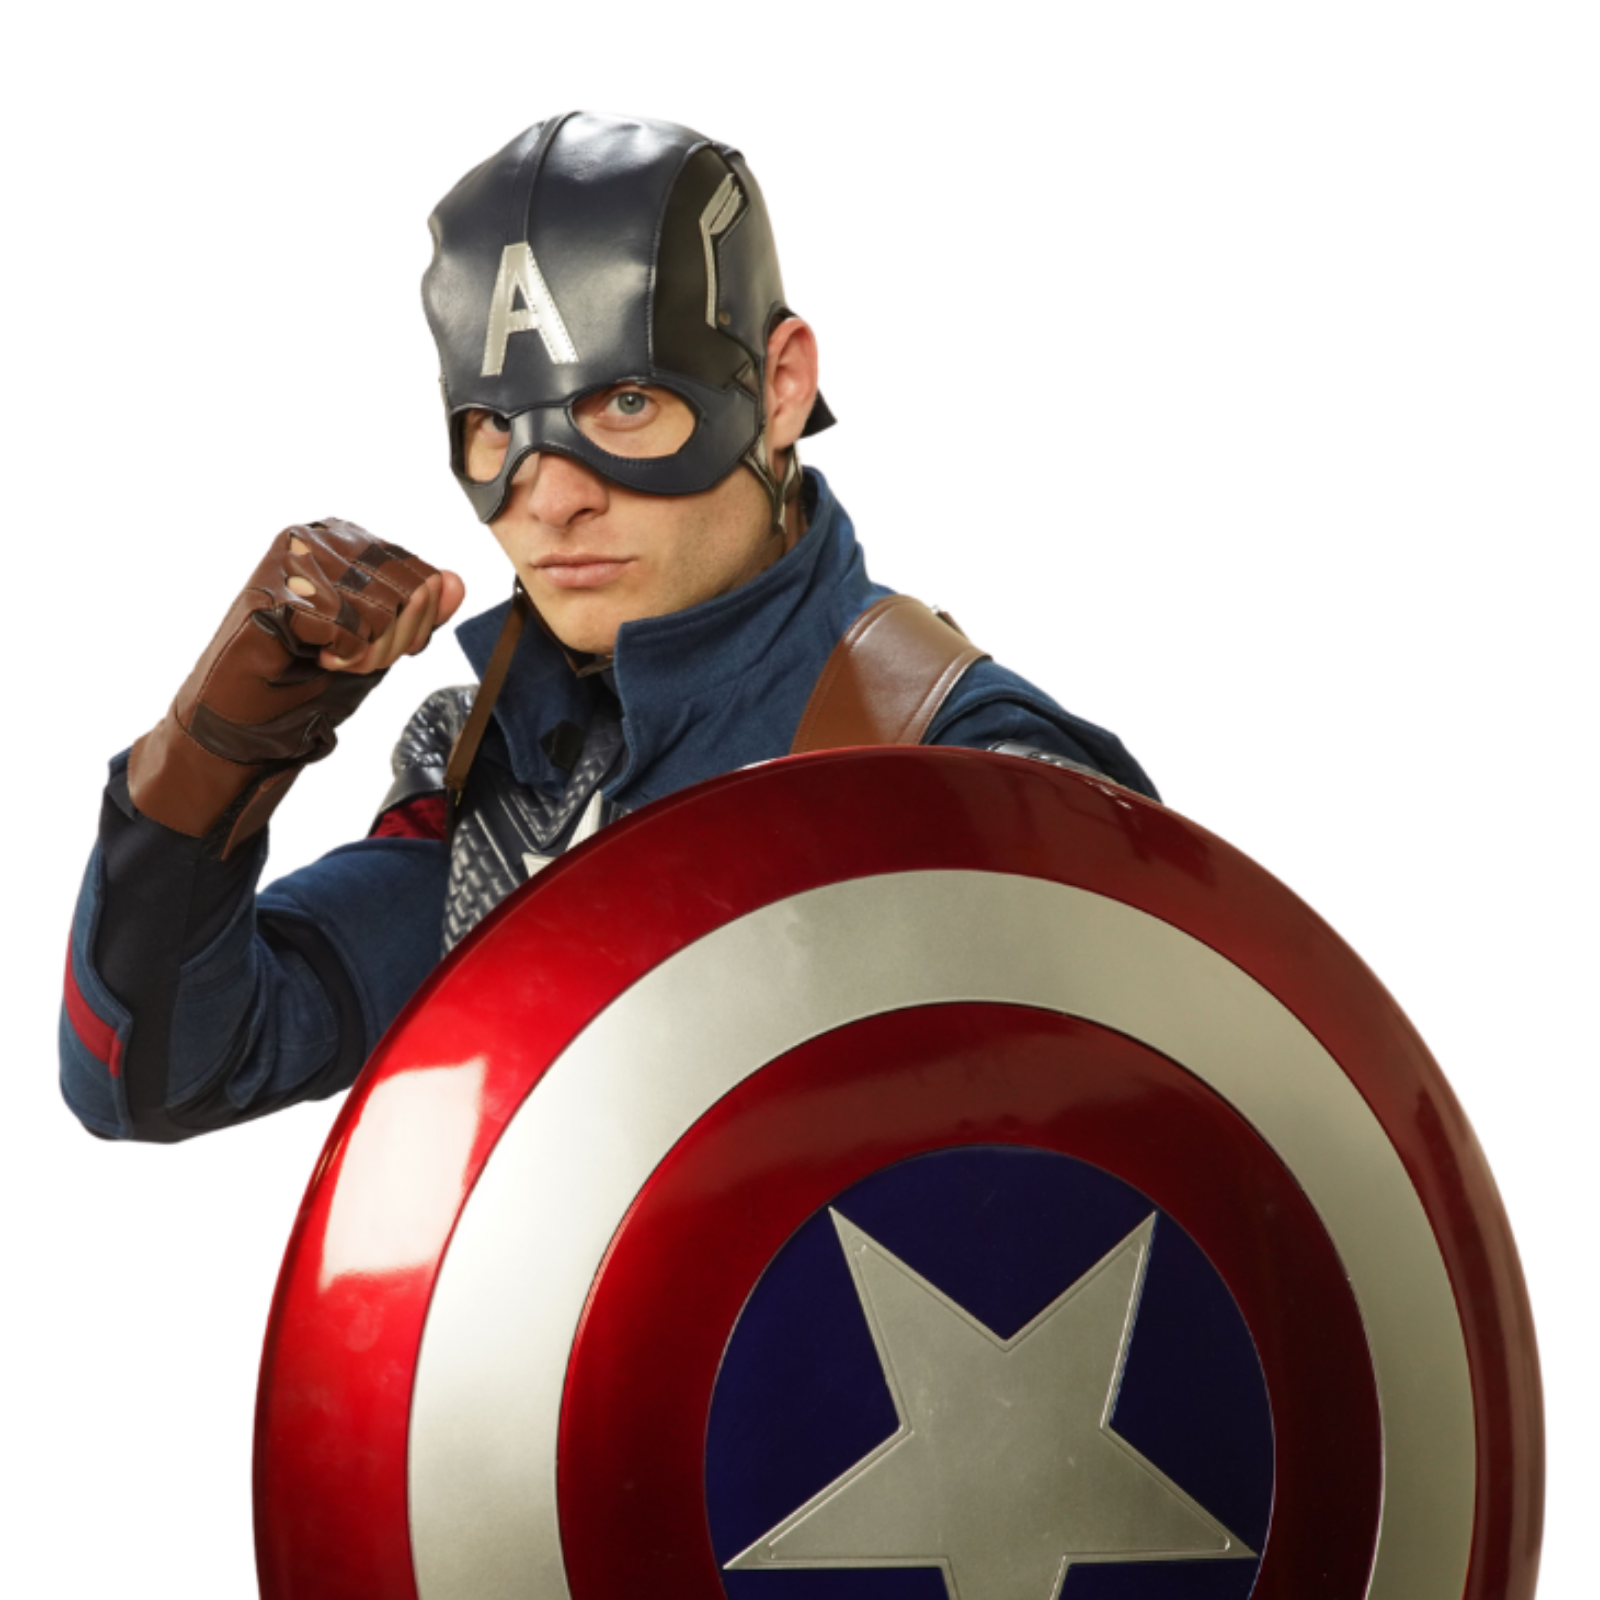 Captain America Entertainer Image